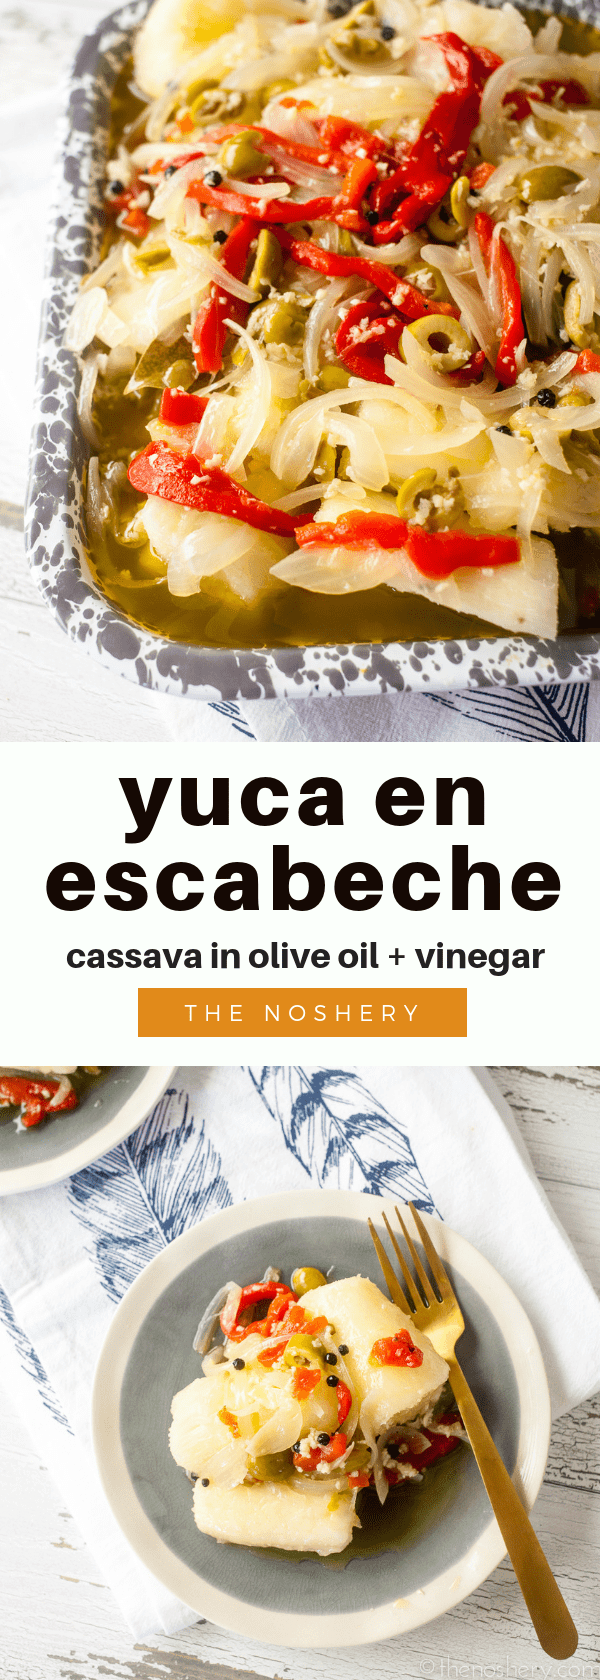 Yuca en Escabeche | Boiled yuca marinades in an olive oil and vinegar sauce with onions, red peppers, and olives. The result is a light refreshing flavor that is still filling and comforting. | The Noshery